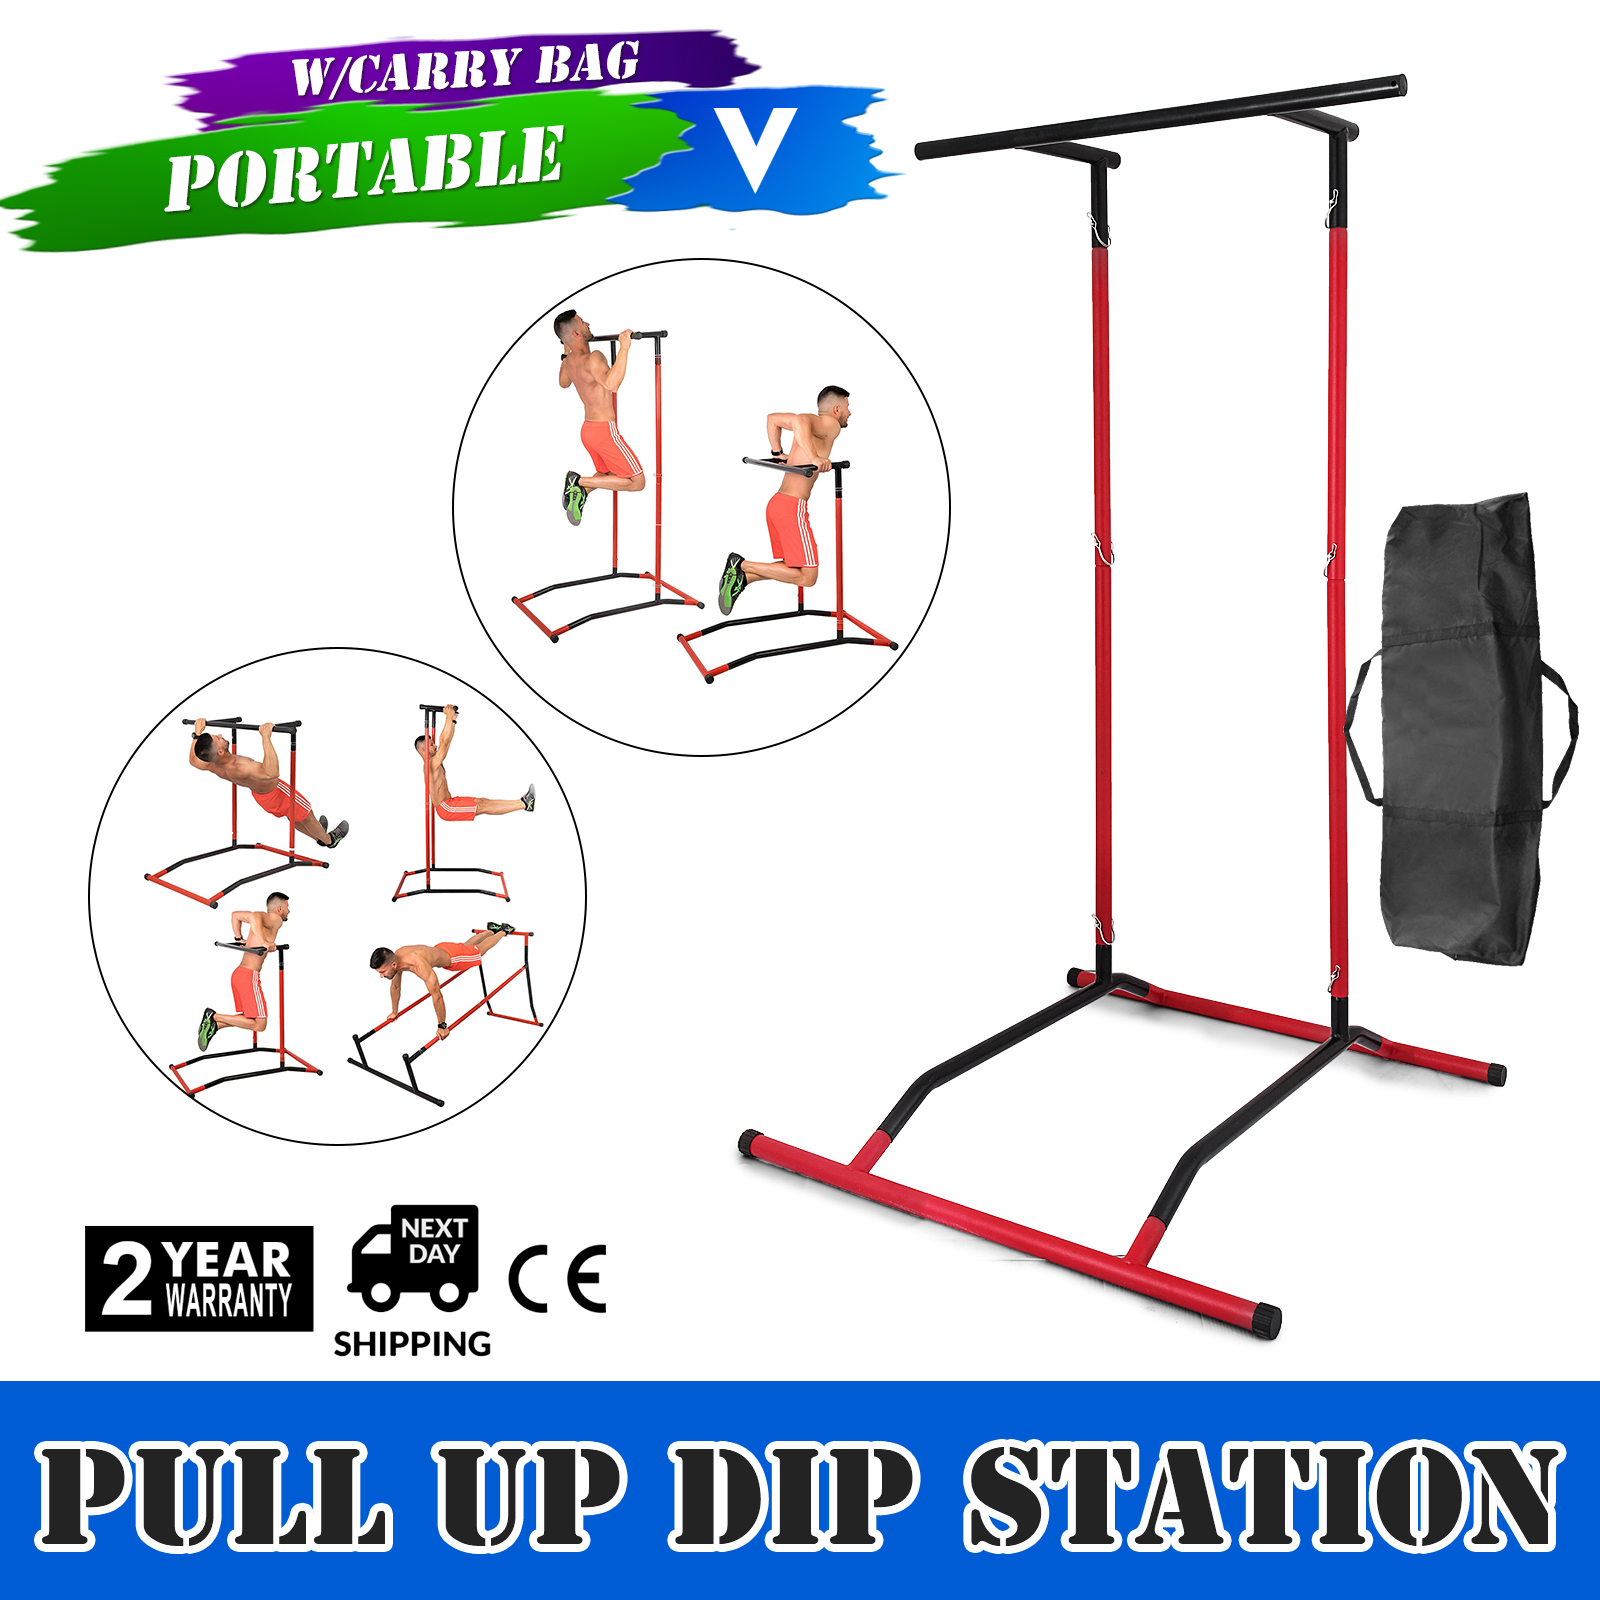 Portable Pull Up Dip Station Gym  Bar Power Tower Multi Function Equipment 220lbs  just for you